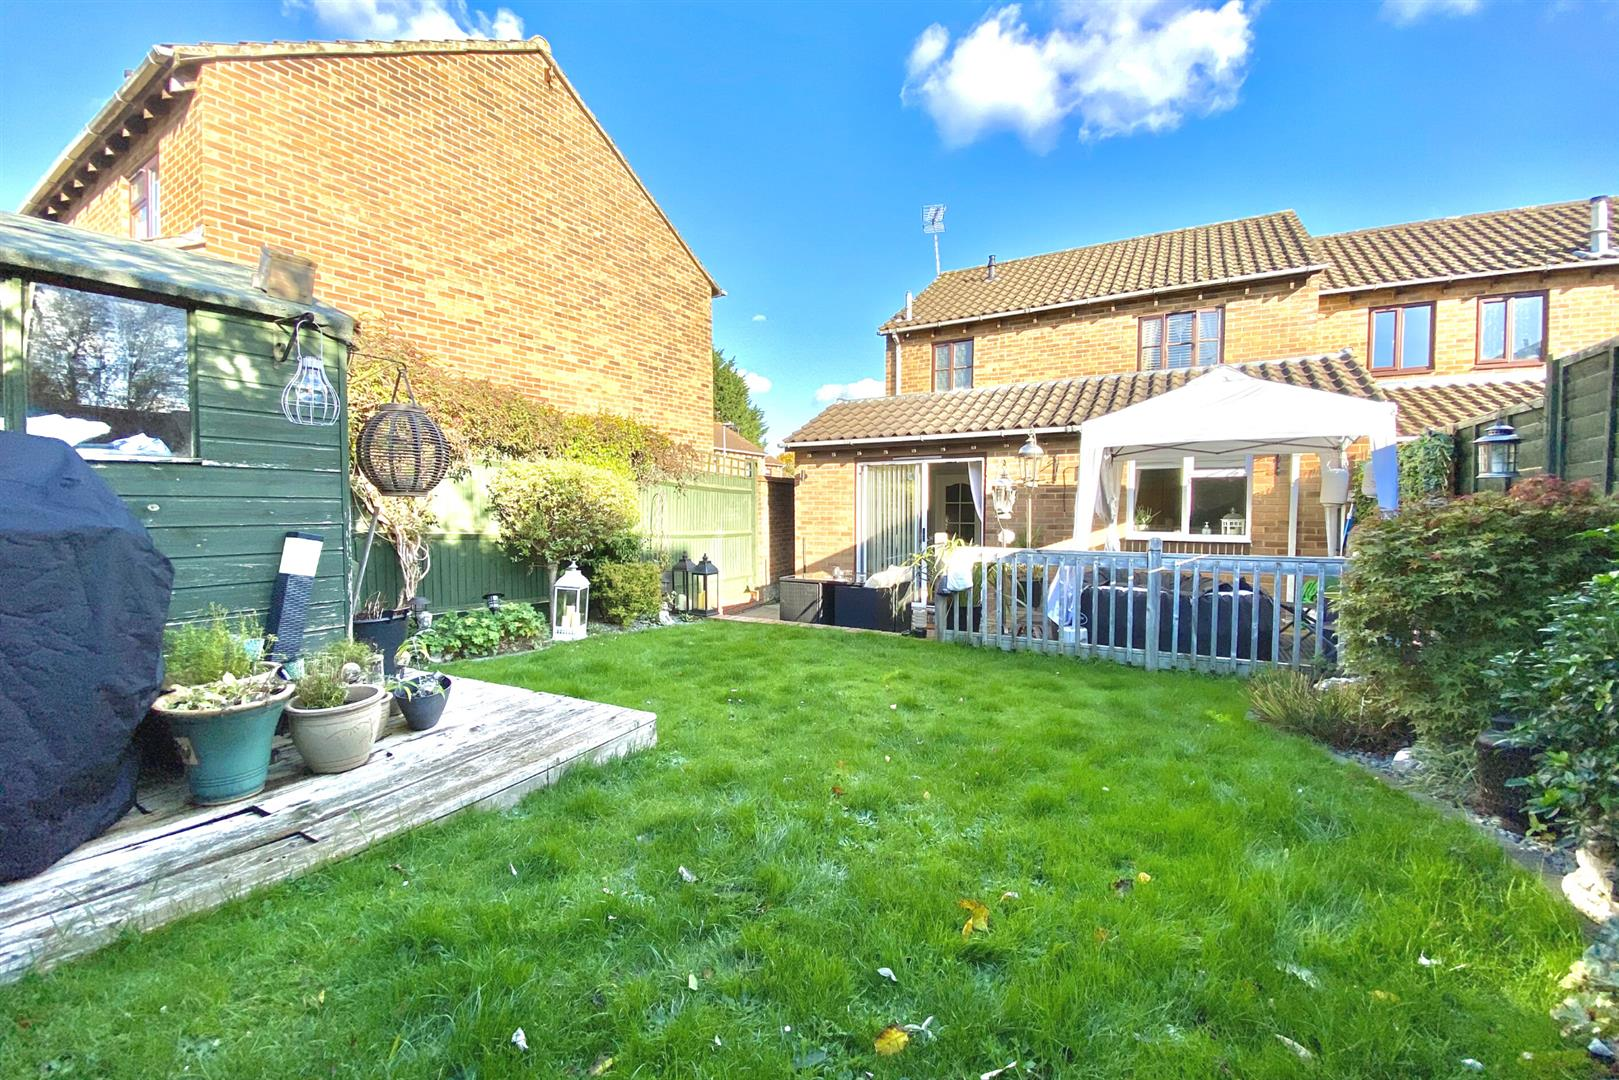 3 bed end of terrace for sale in Lower Earley  - Property Image 11